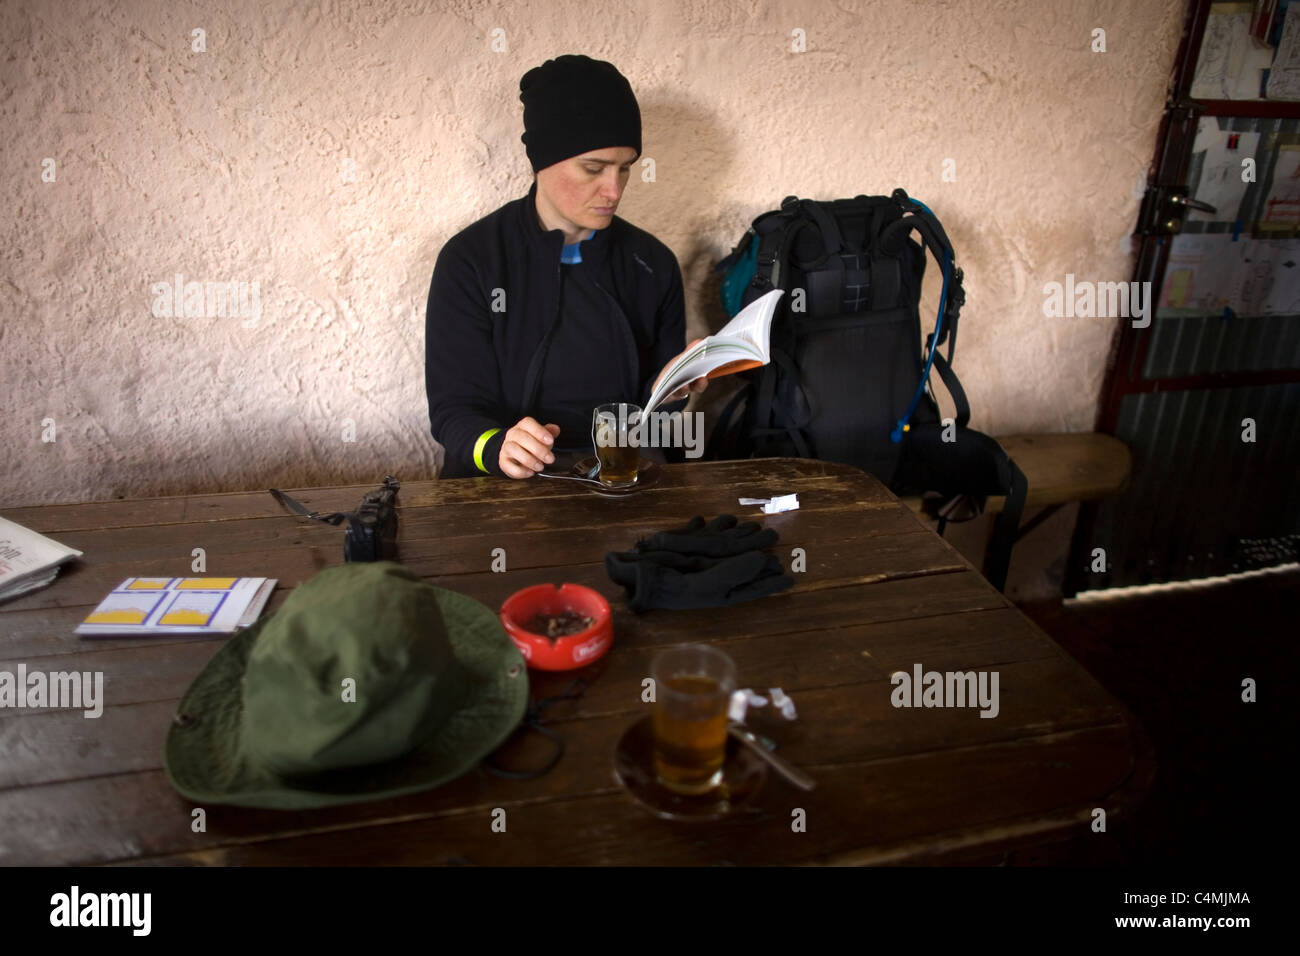 A pilgrim checks her tourist guide in a bar in the French Way of the Way of Saint James, in El Ganso, Spain - Stock Image